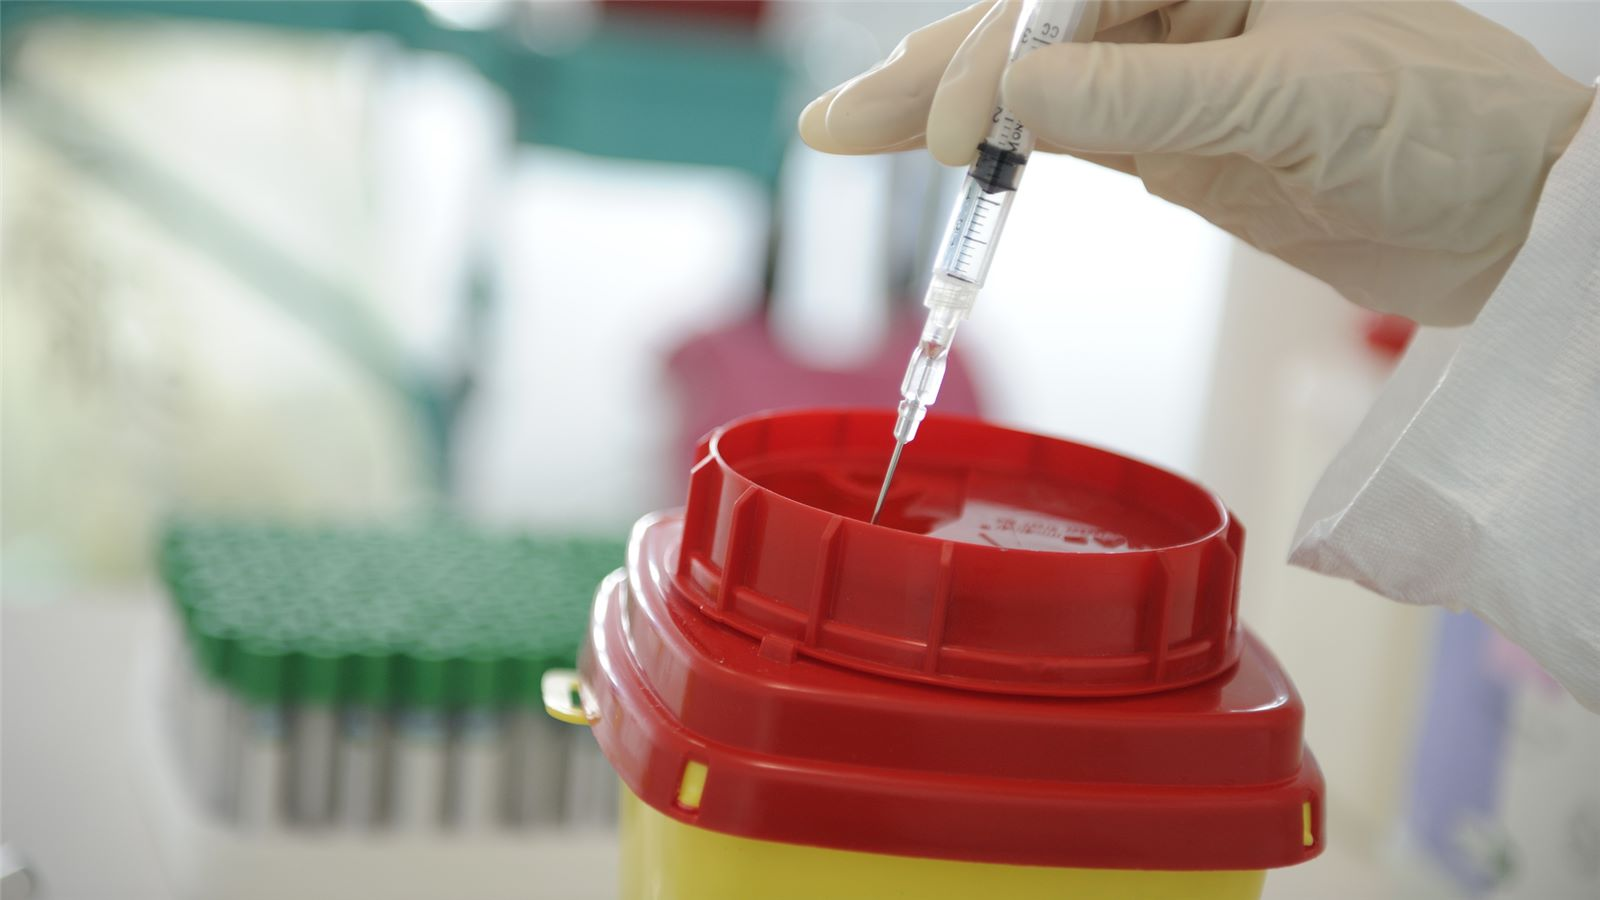 SUEZ medical and clinical services header image. Image of hand in medical safety glove placing syringe in sharps container.